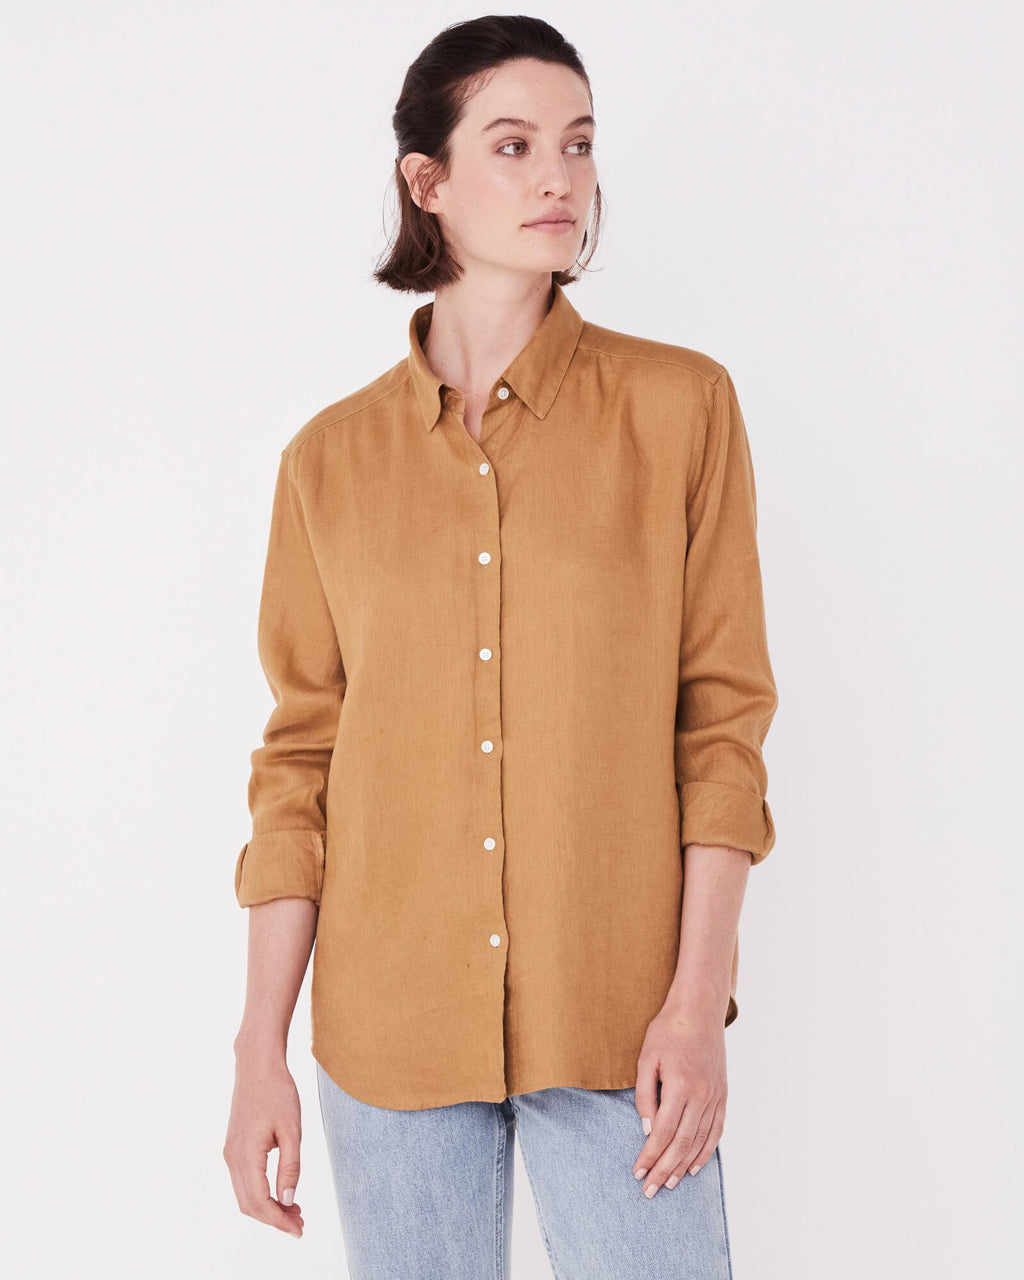 Assembly Label Xander Long Sleeve Shirt - Sepia